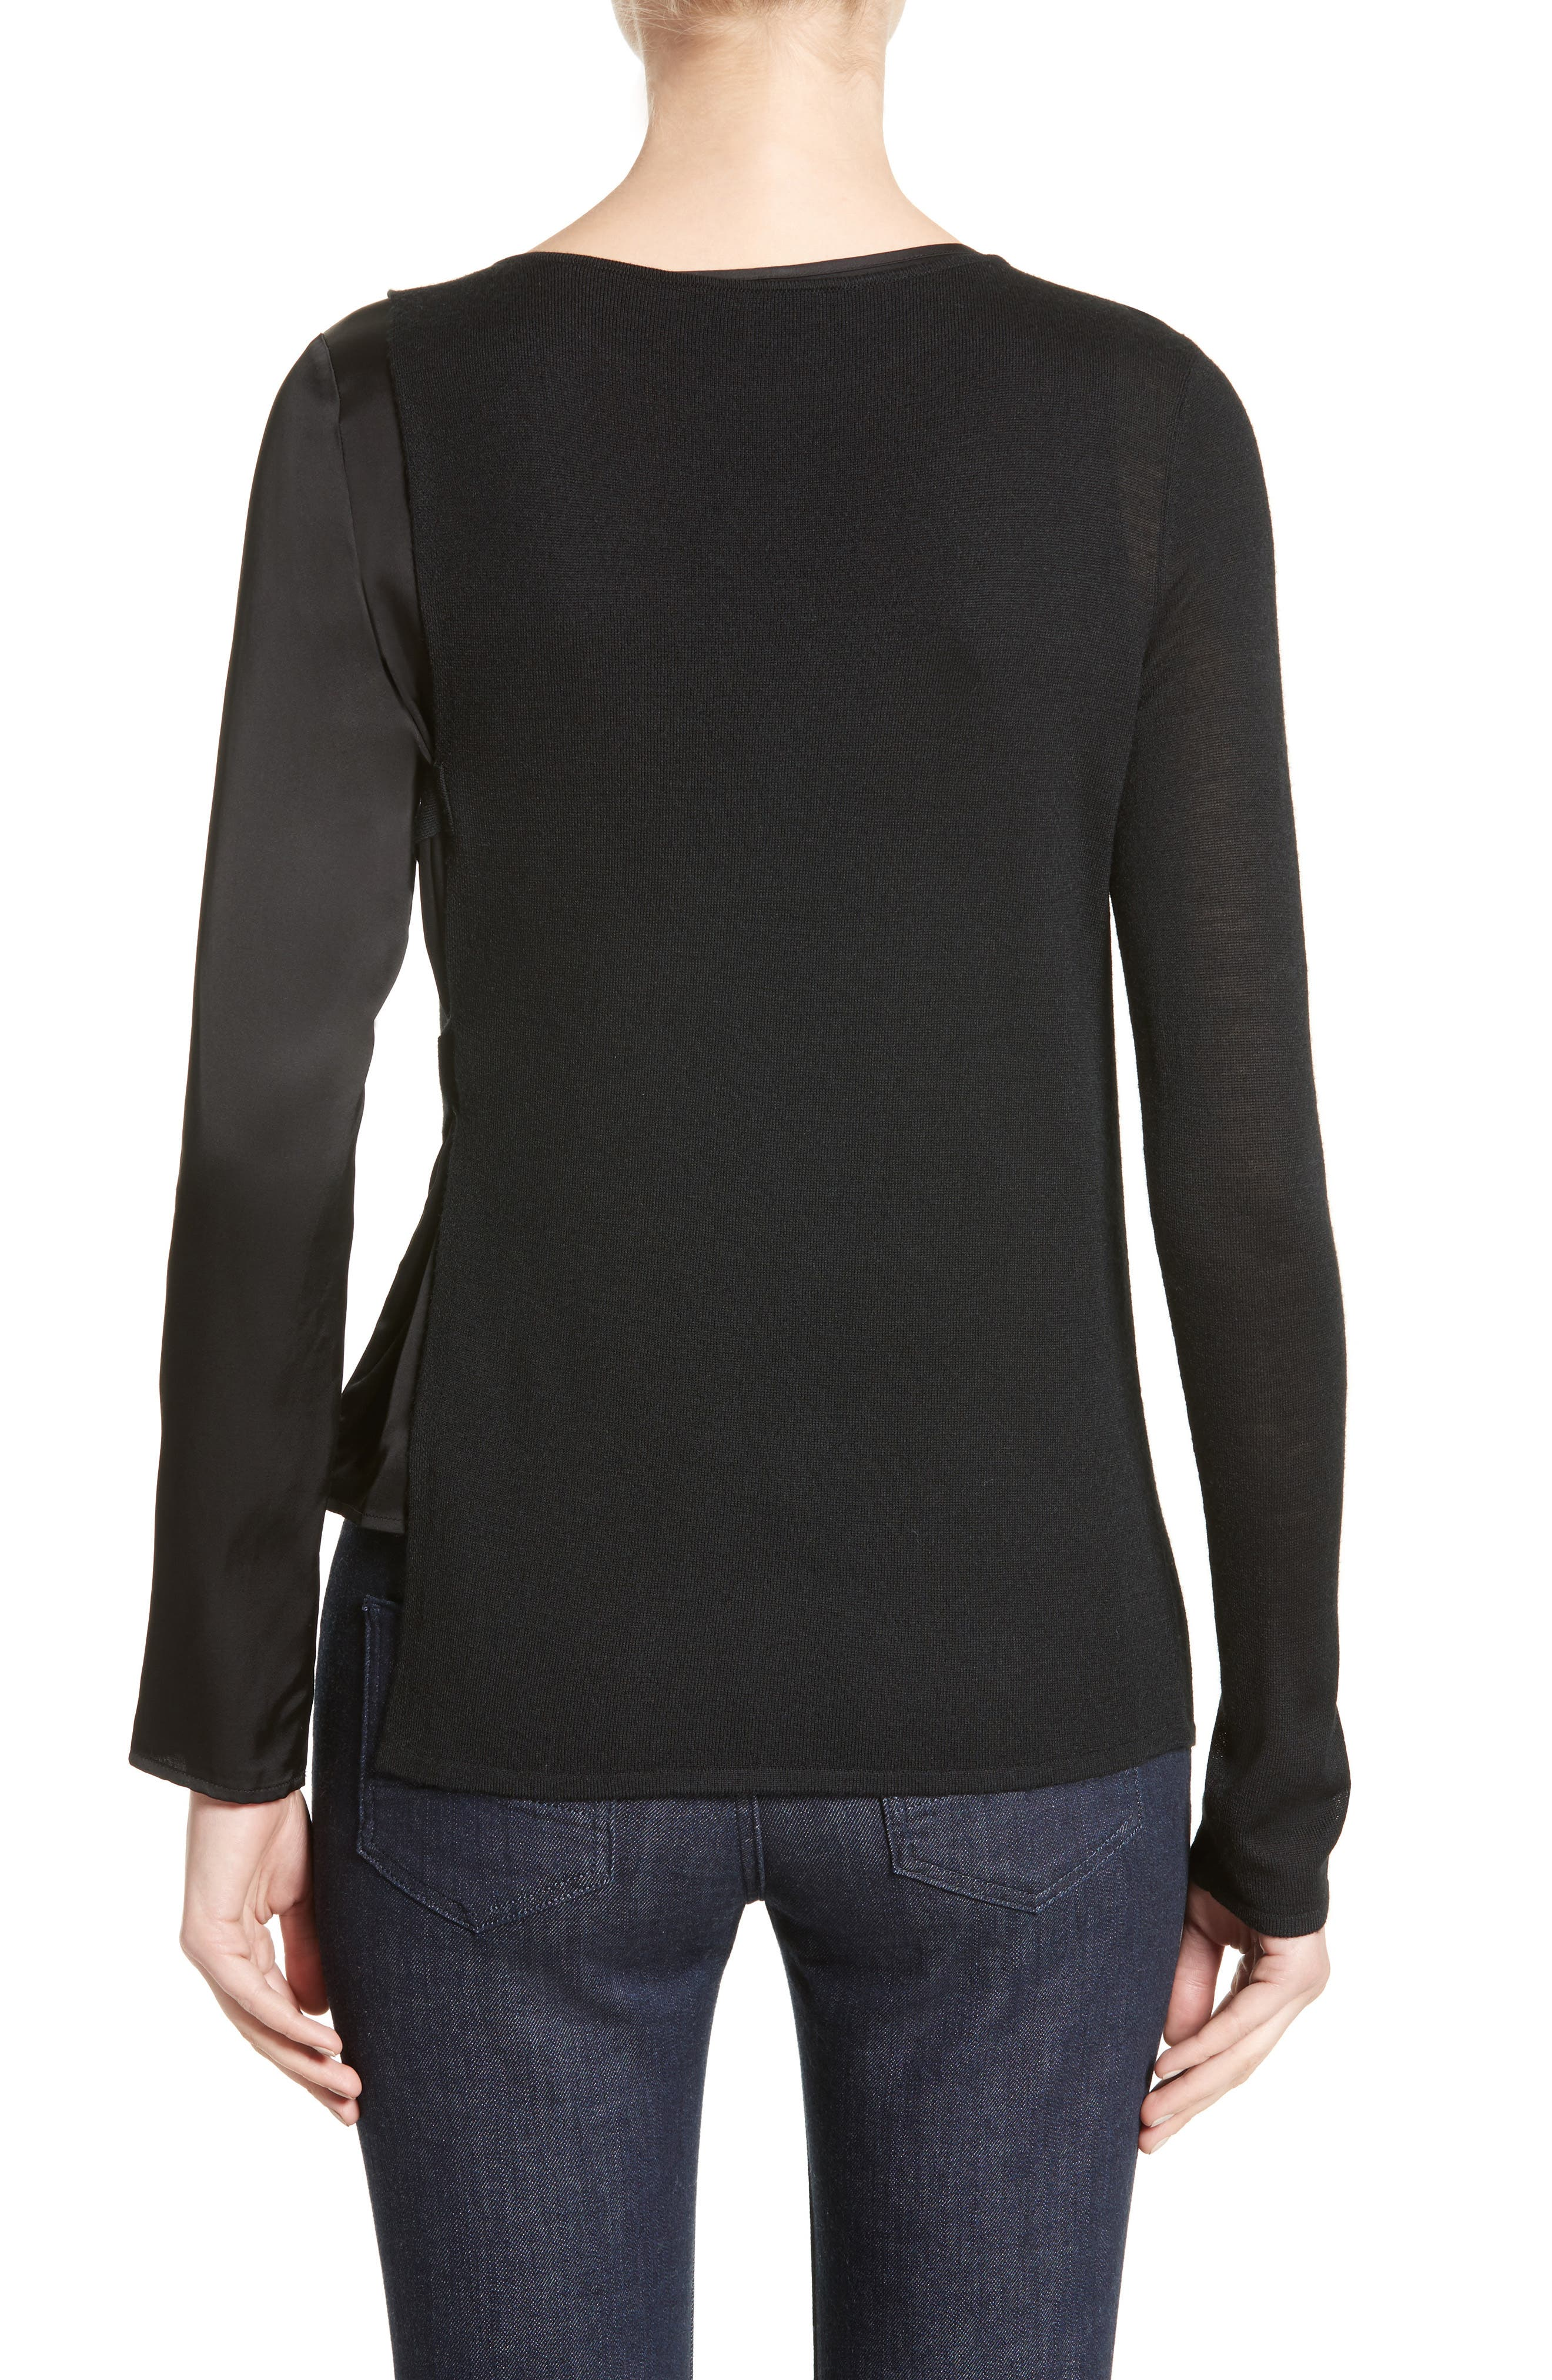 Armani Jeans D-Ring Wool Blend Sweater,                             Alternate thumbnail 2, color,                             001